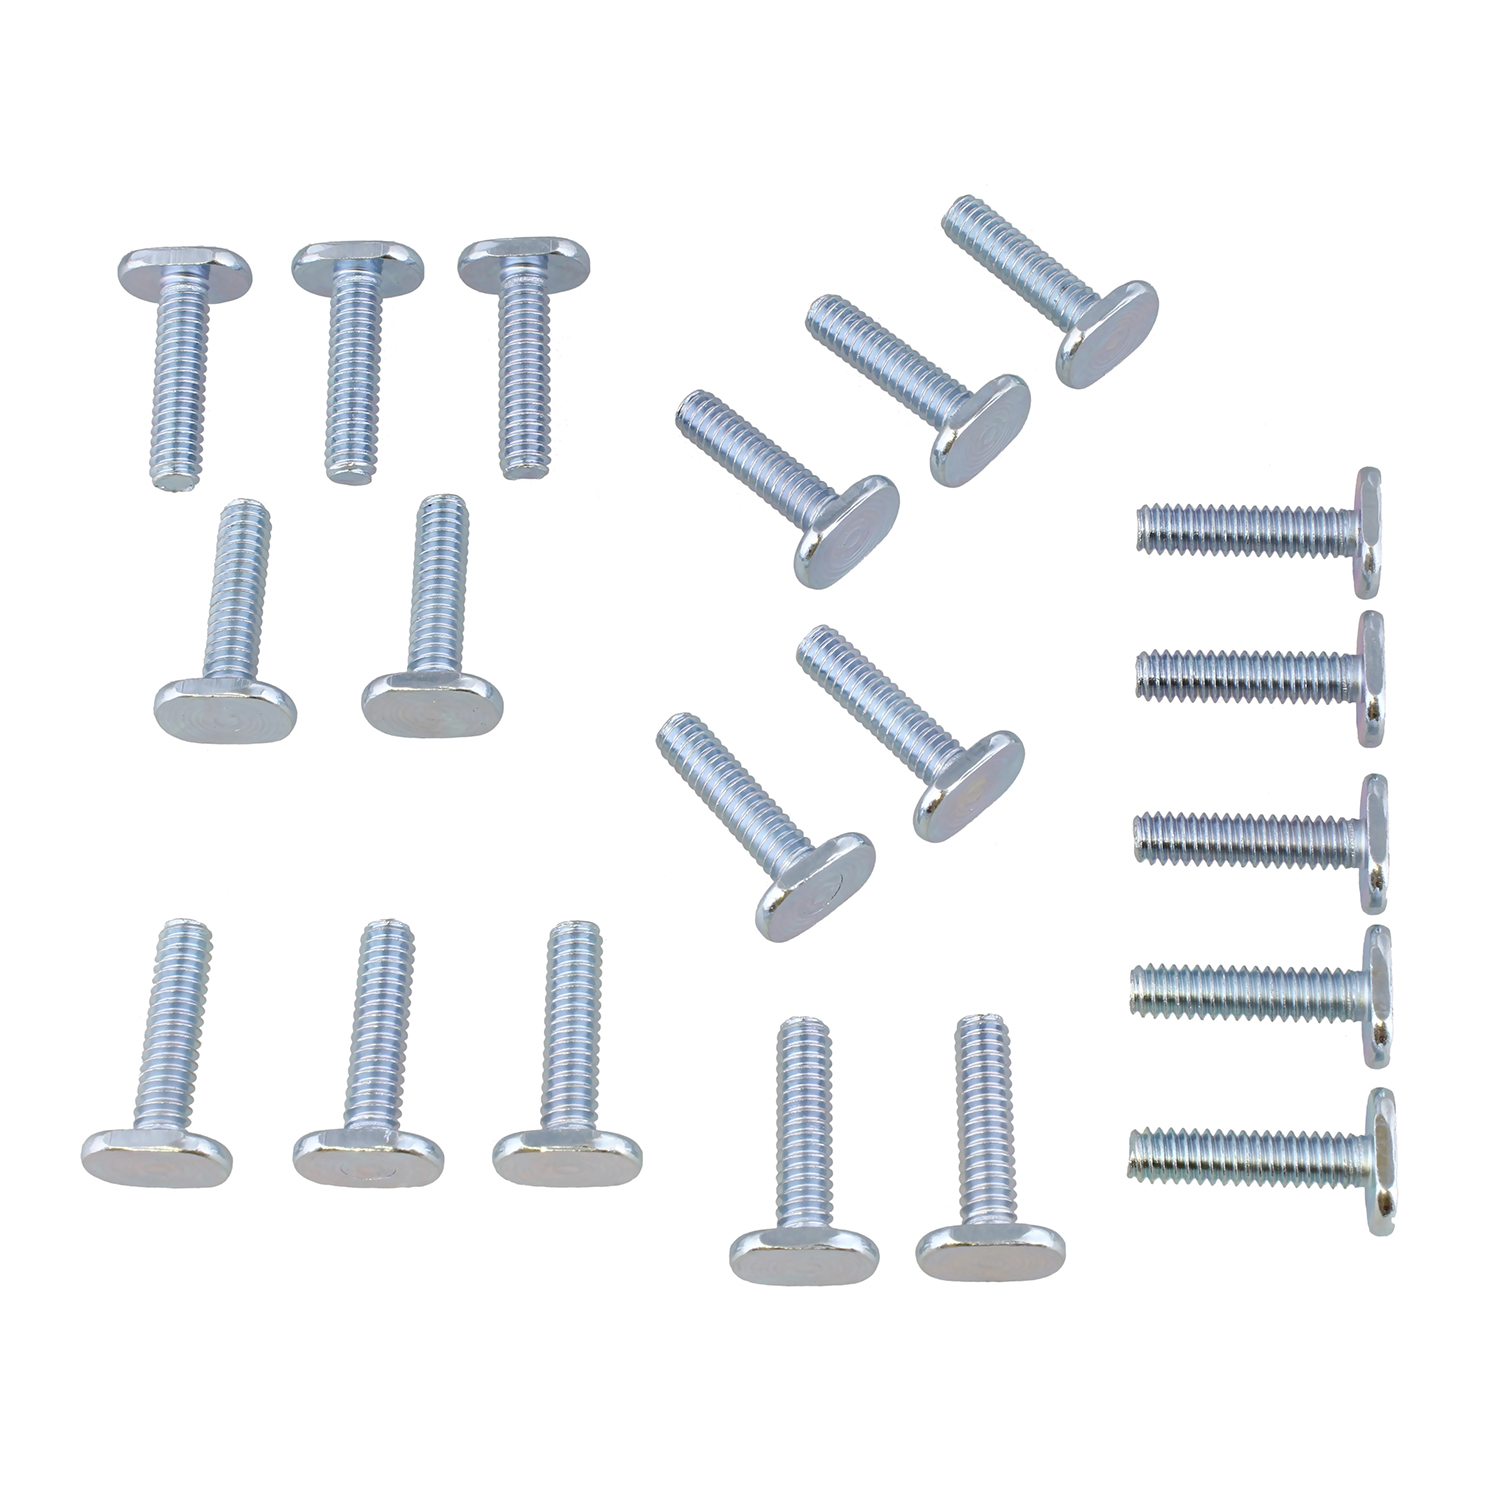 DCT® | Tee Bolt Set – 20 Pack T Bolts for Woodworking, T Track Bolts + Jig Bolts